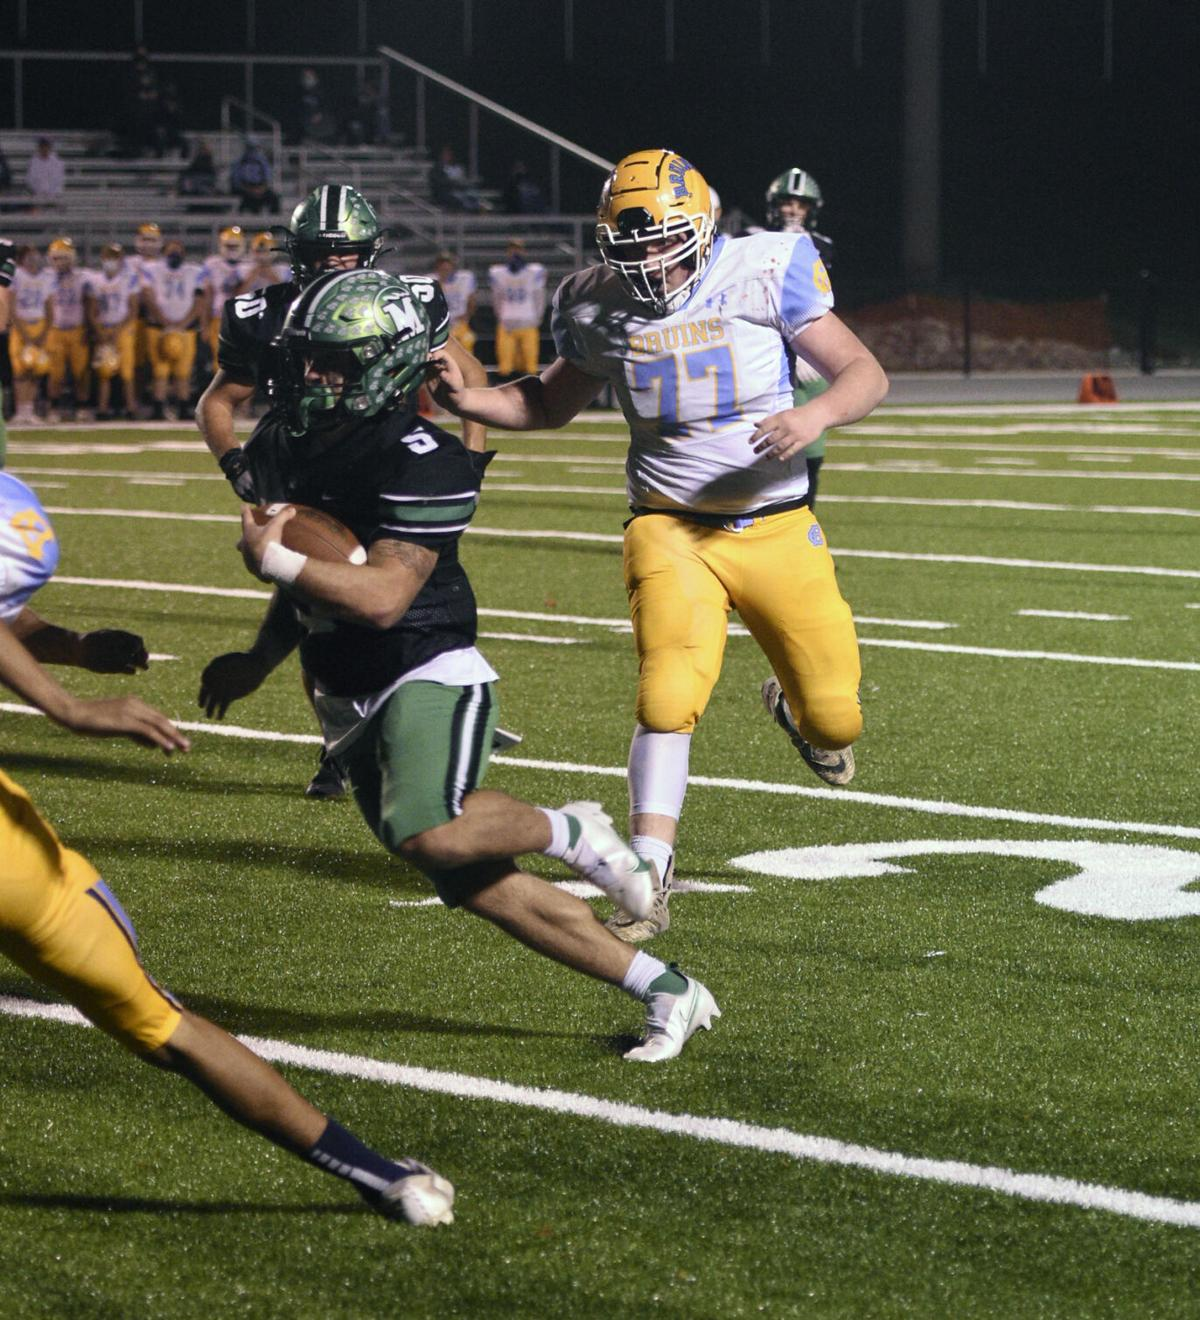 PREP FOOTBALL: Meade beats Central in playoff opener